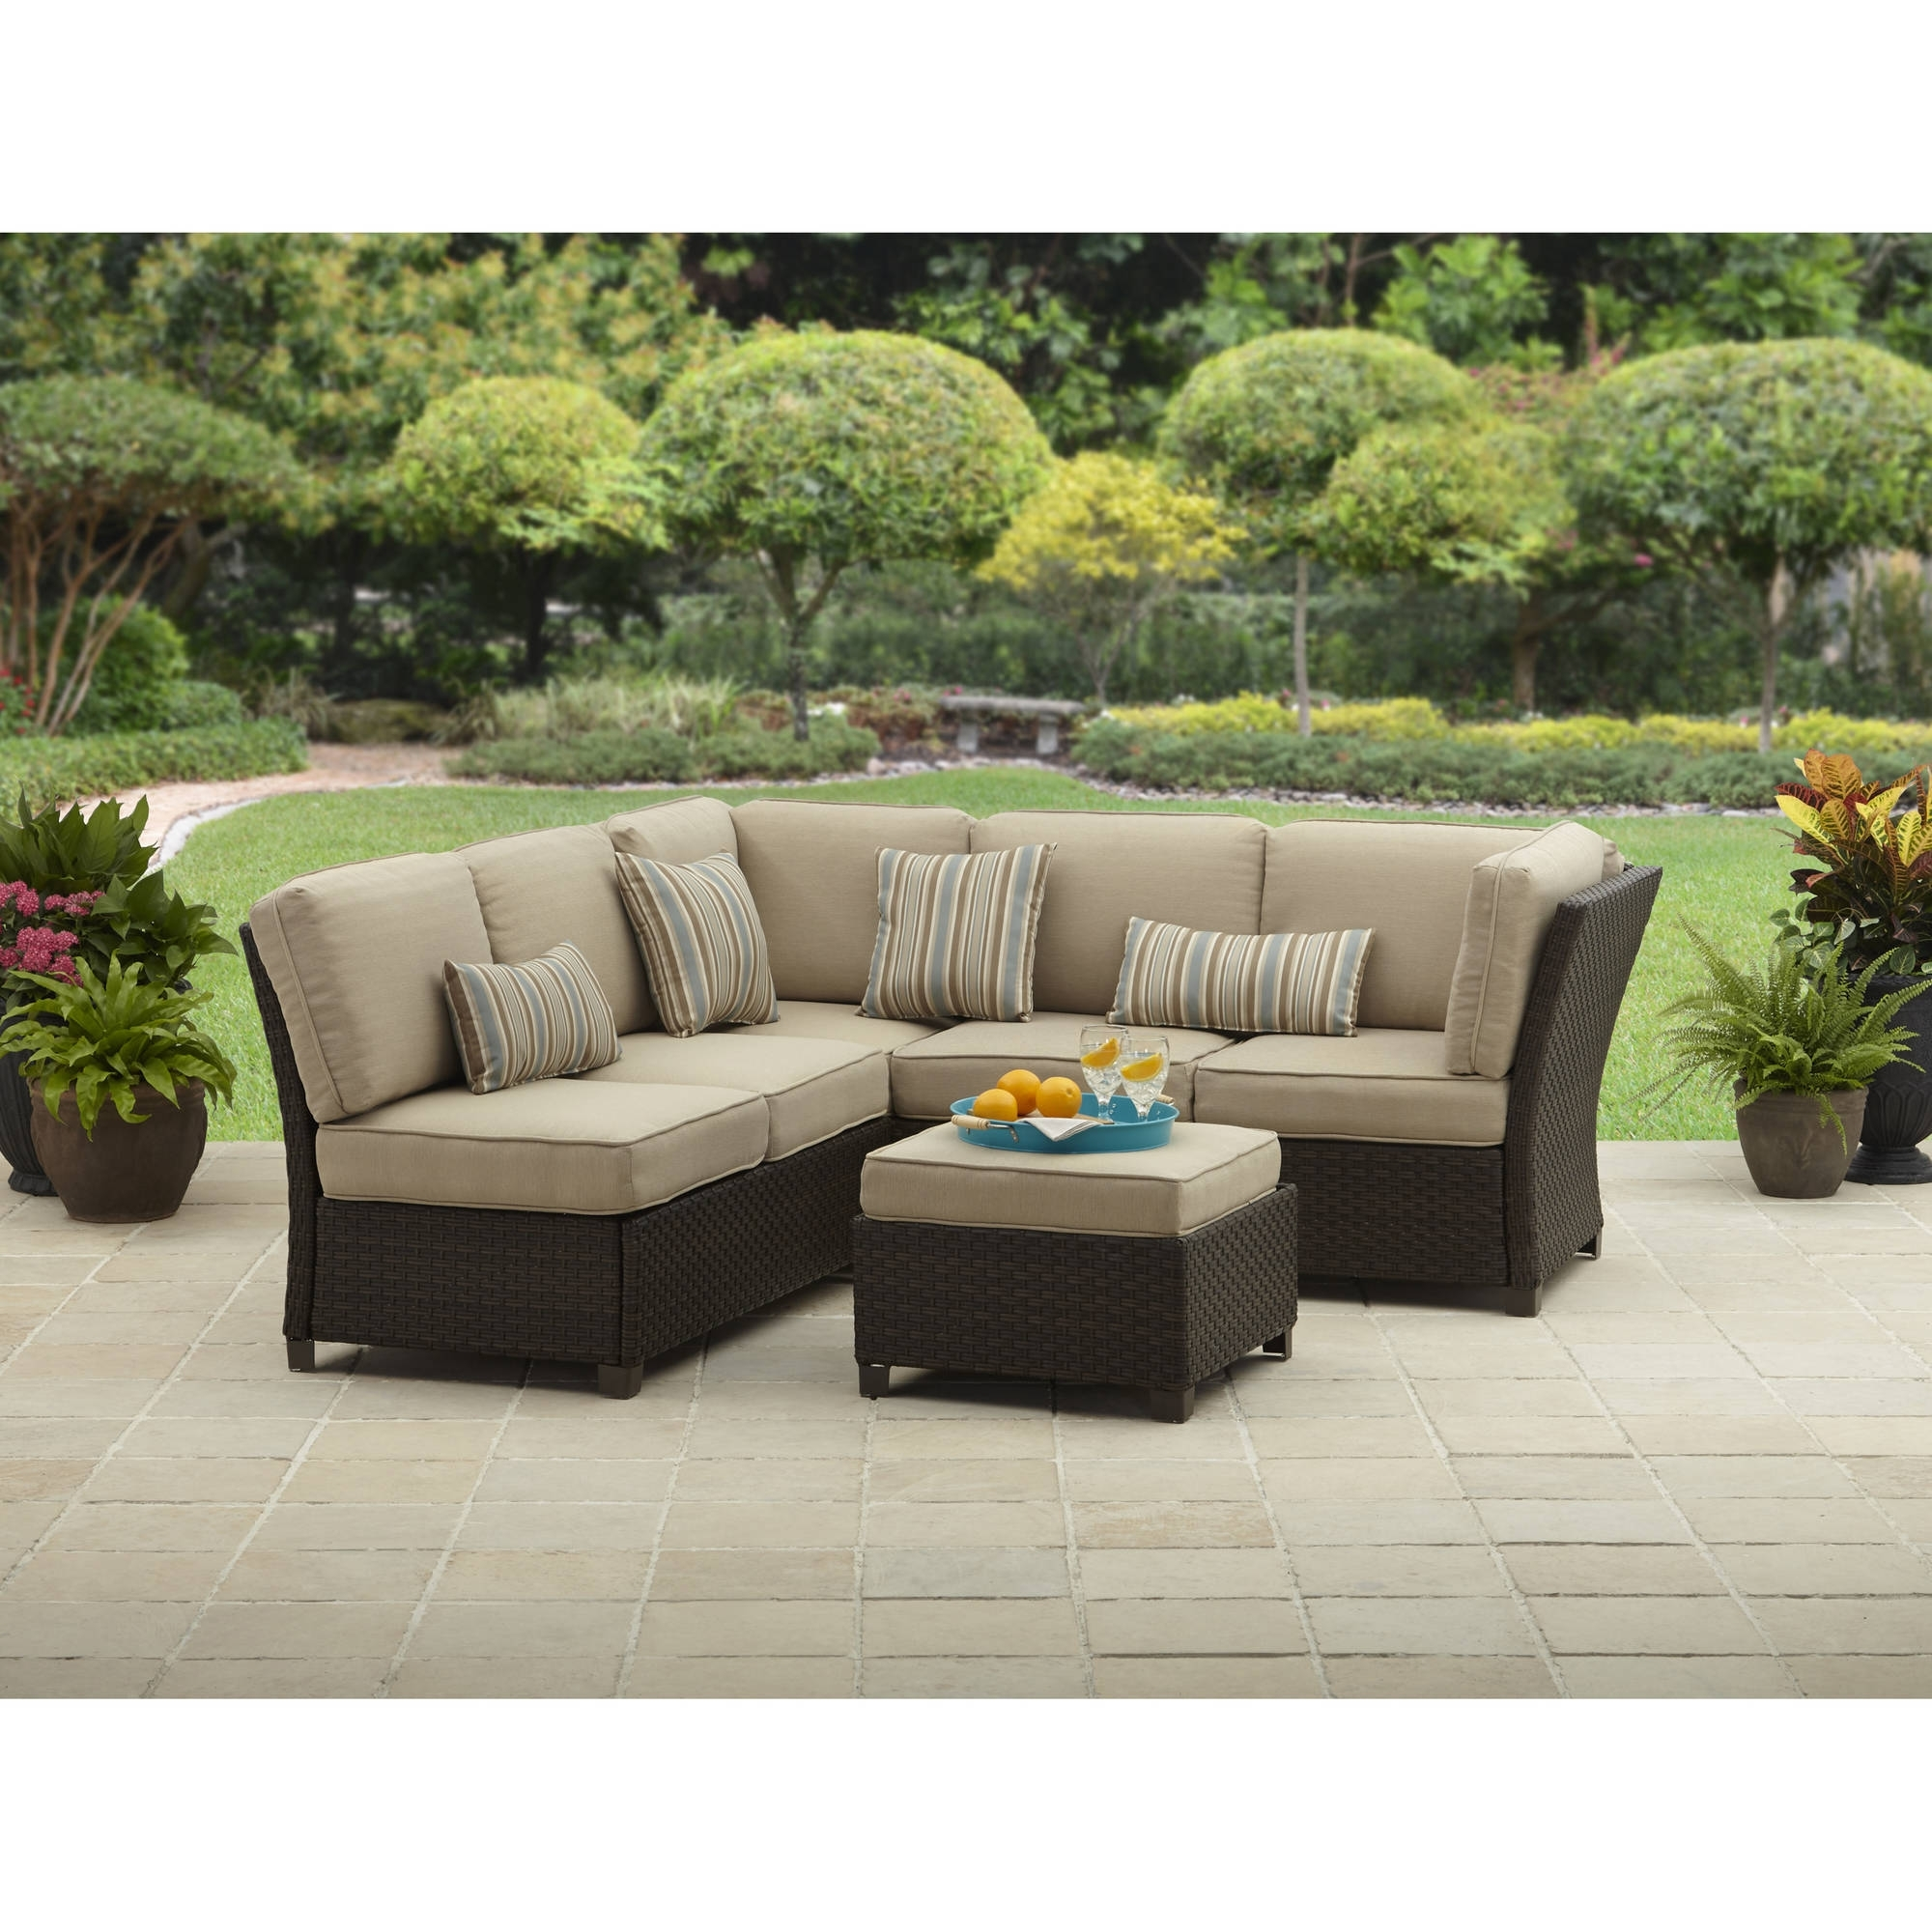 Fashionable Better Homes And Gardens Cadence Wicker Outdoor Sectional Sofa Set With Regard To Sams Club Sectional Sofas (View 15 of 20)